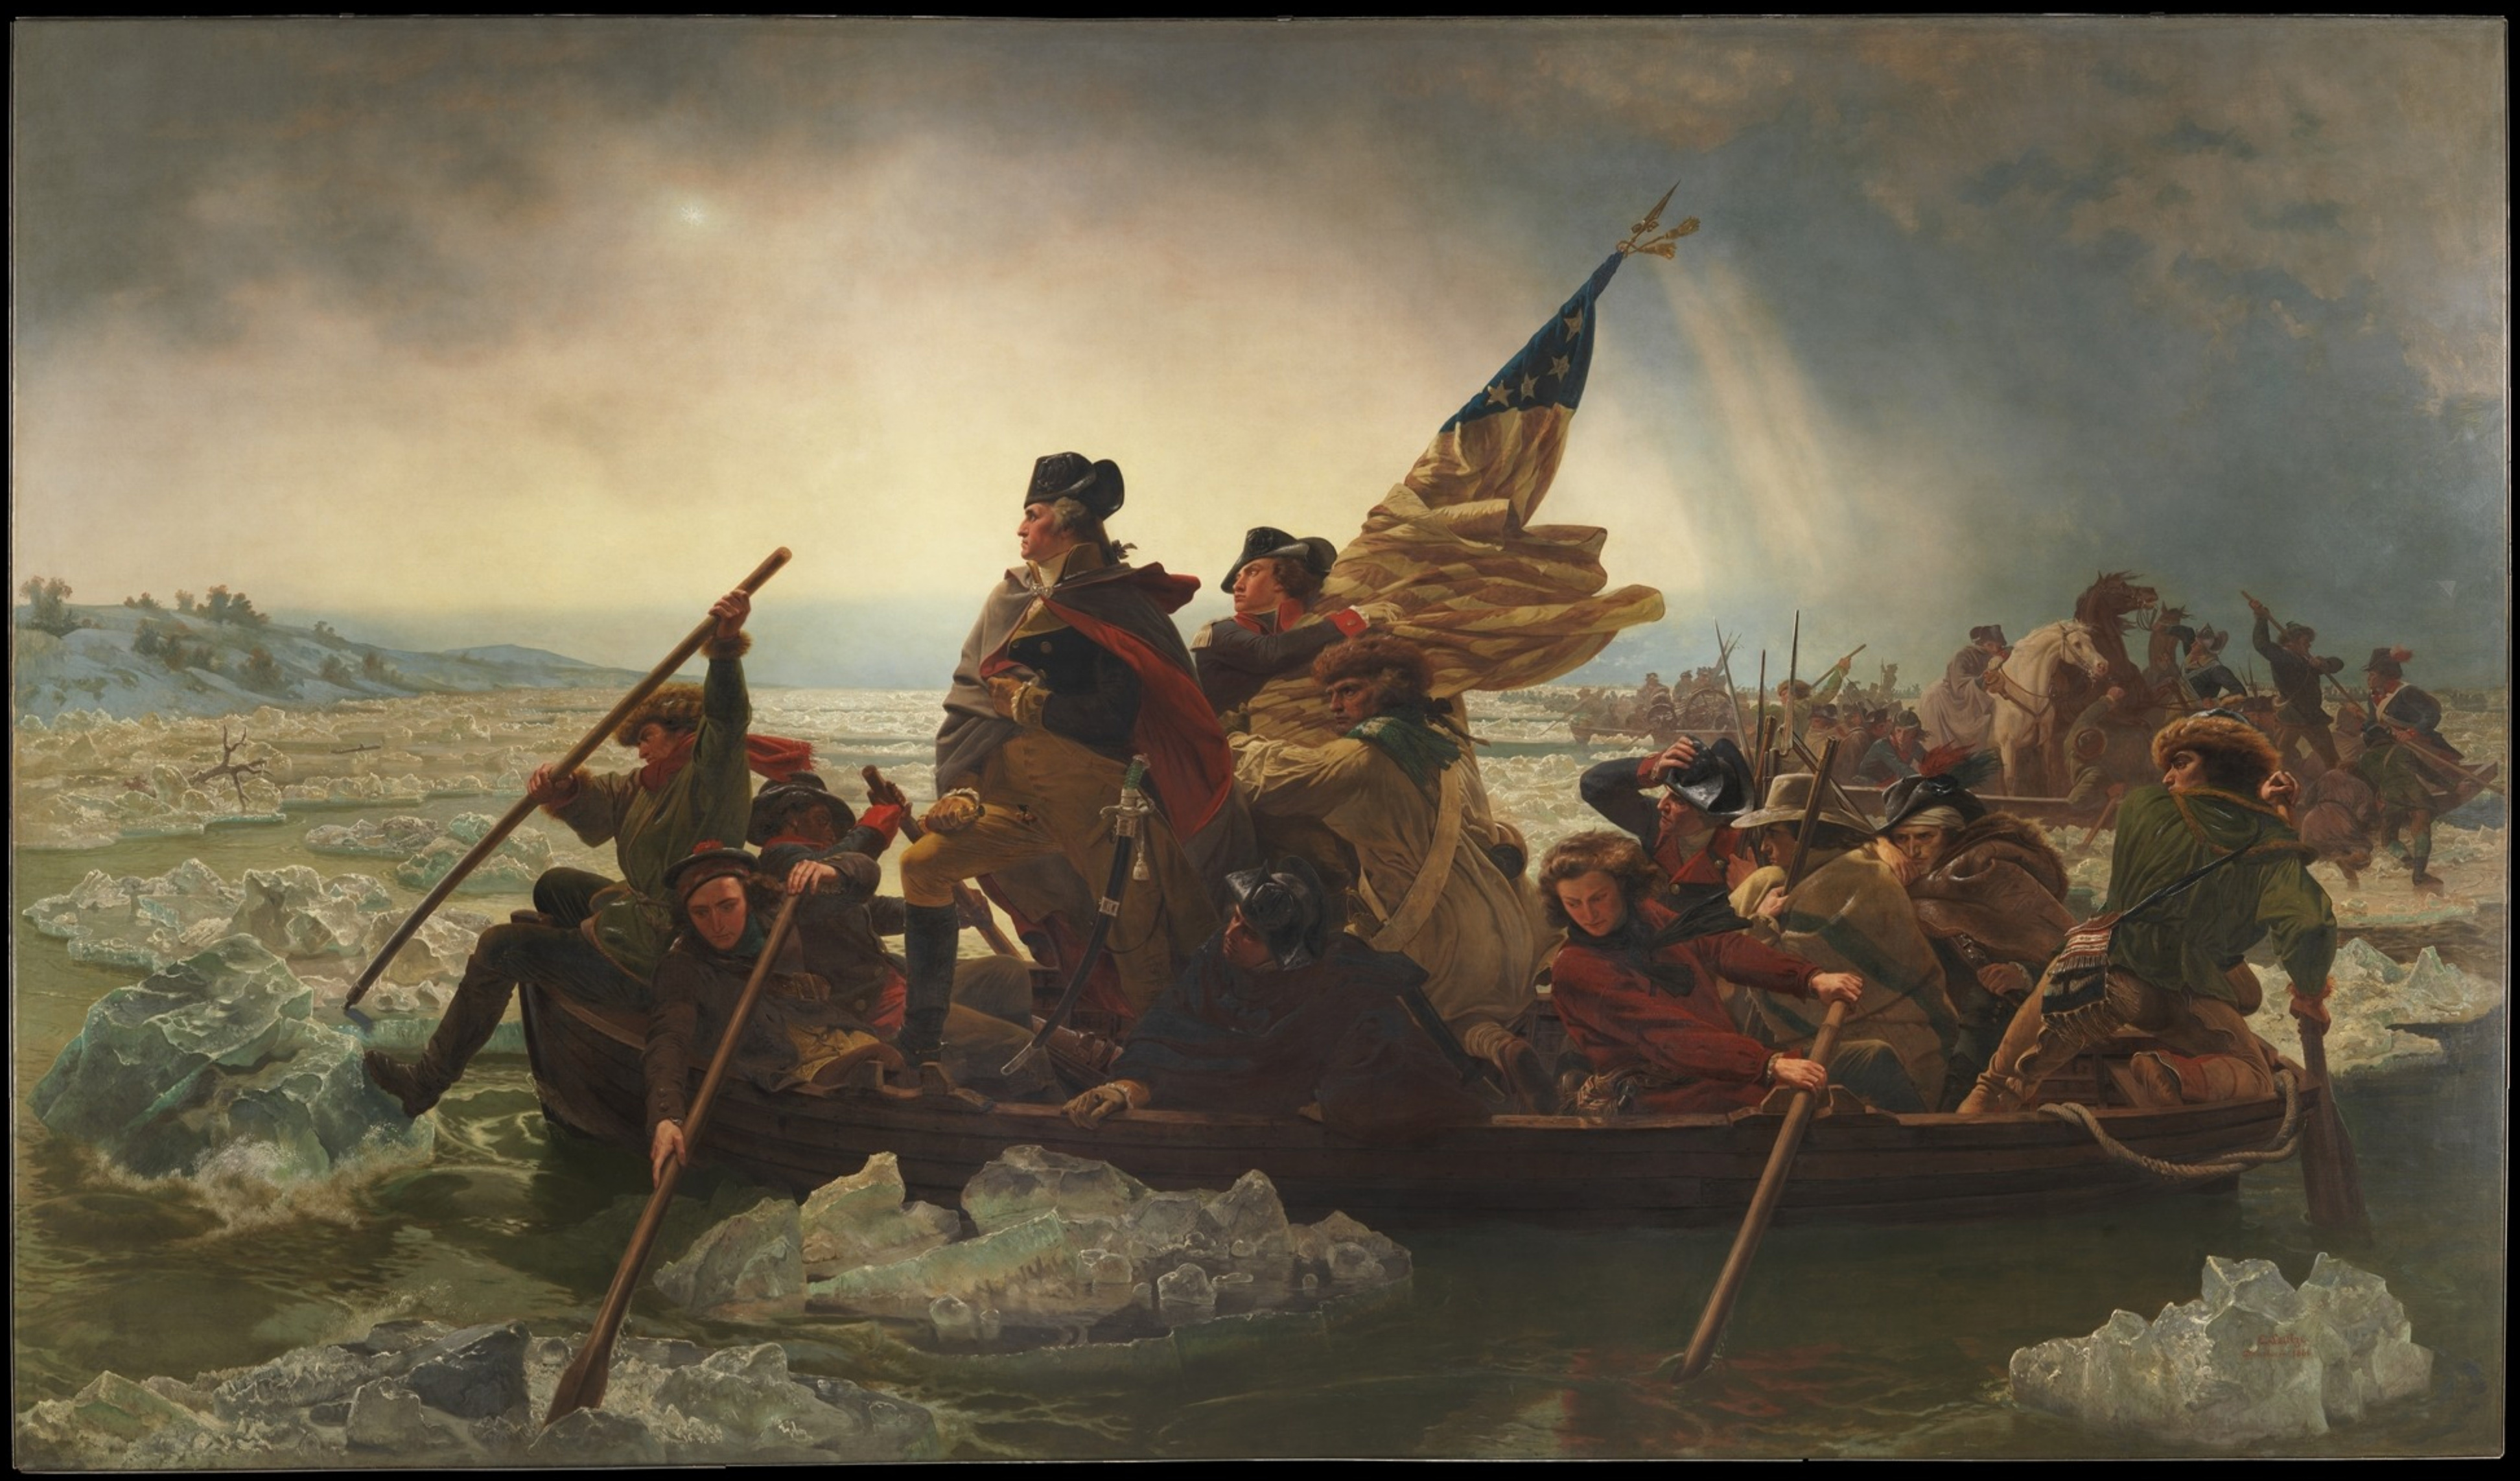 washington crossing online hookup & dating Read online george washington the crossing as forgive as you can  related documents by : george washington the crossing radioactive dating worksheet answers.